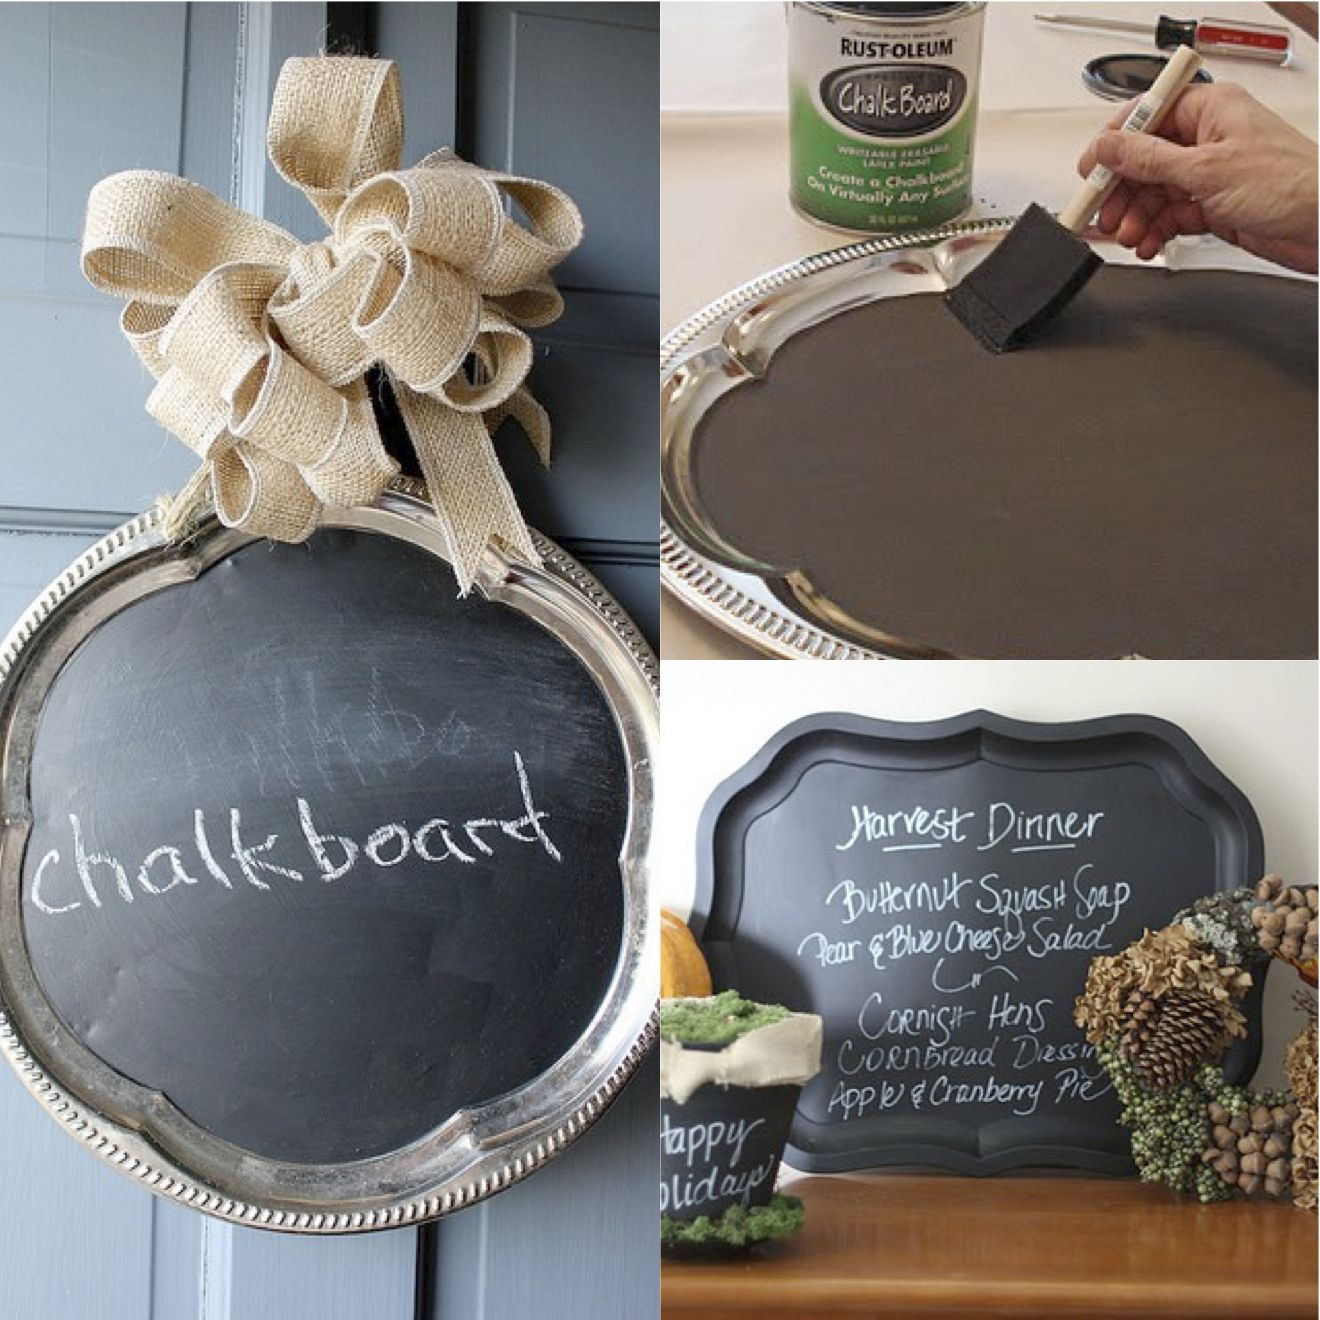 I have 2 cans of chalkboard paint--now to find the platter!  Super excited about this!